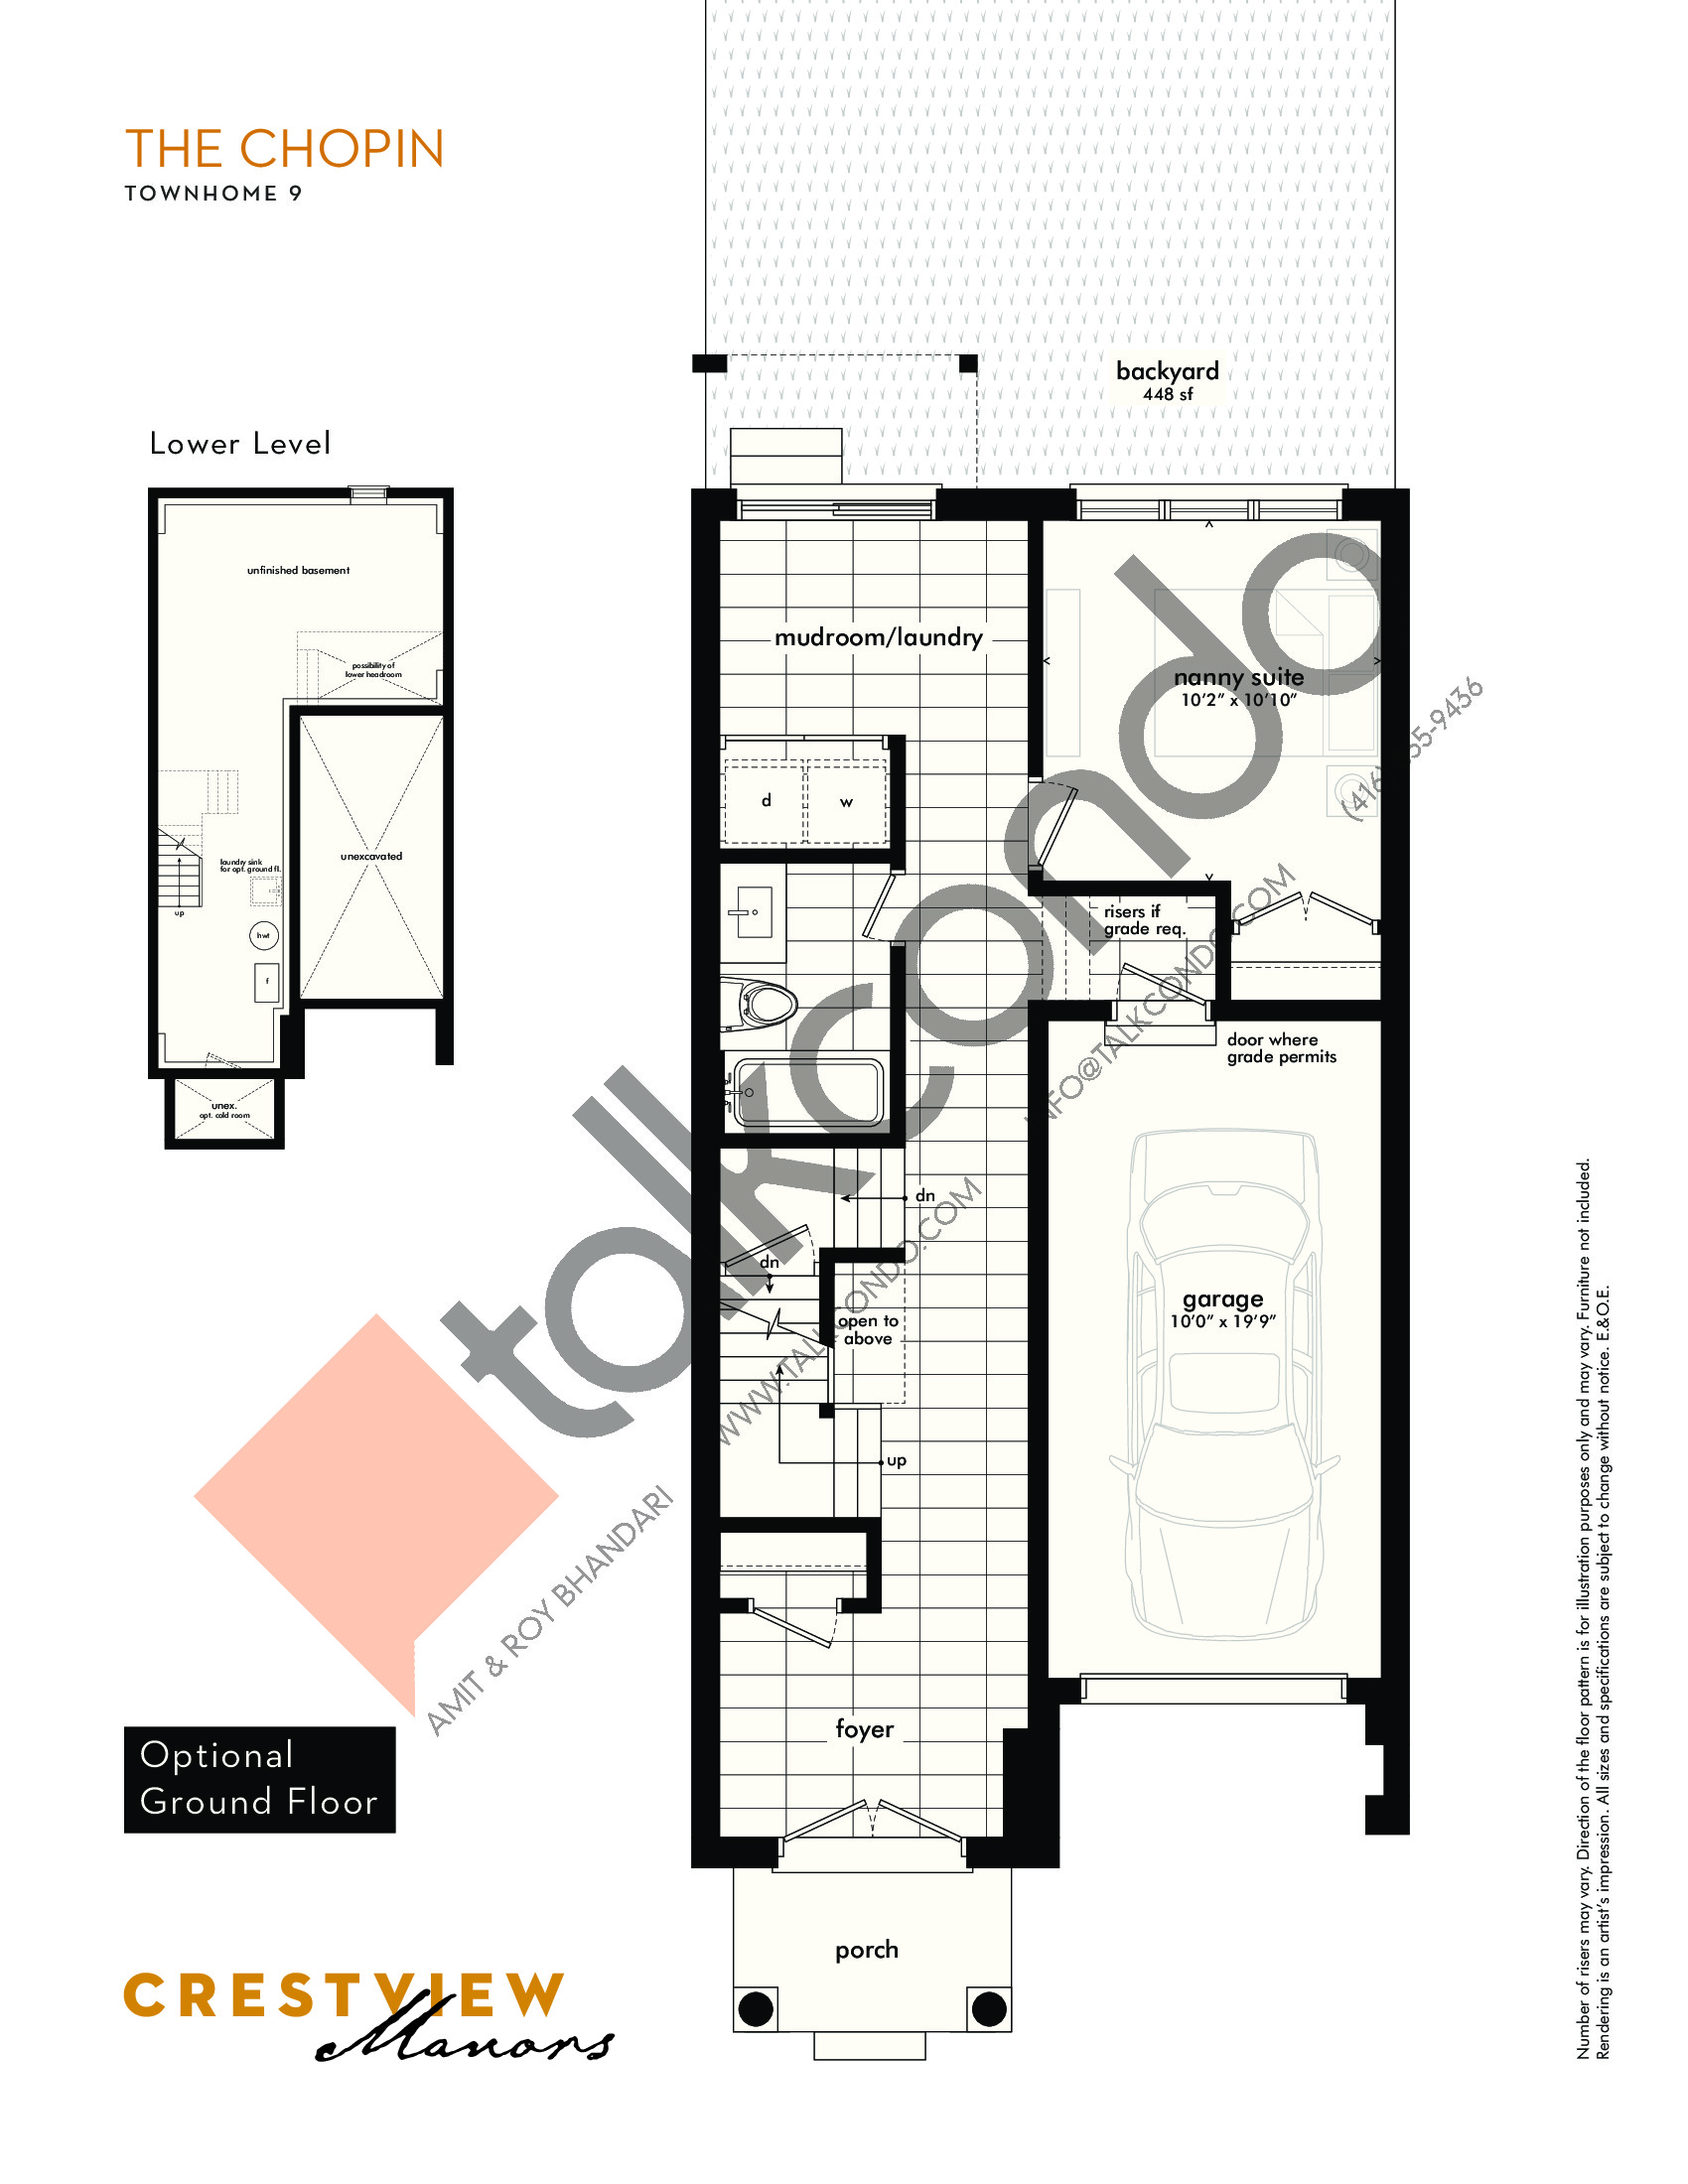 The Chopin - Optional Ground Floor Floor Plan at Crestview Manors - 2241 sq.ft